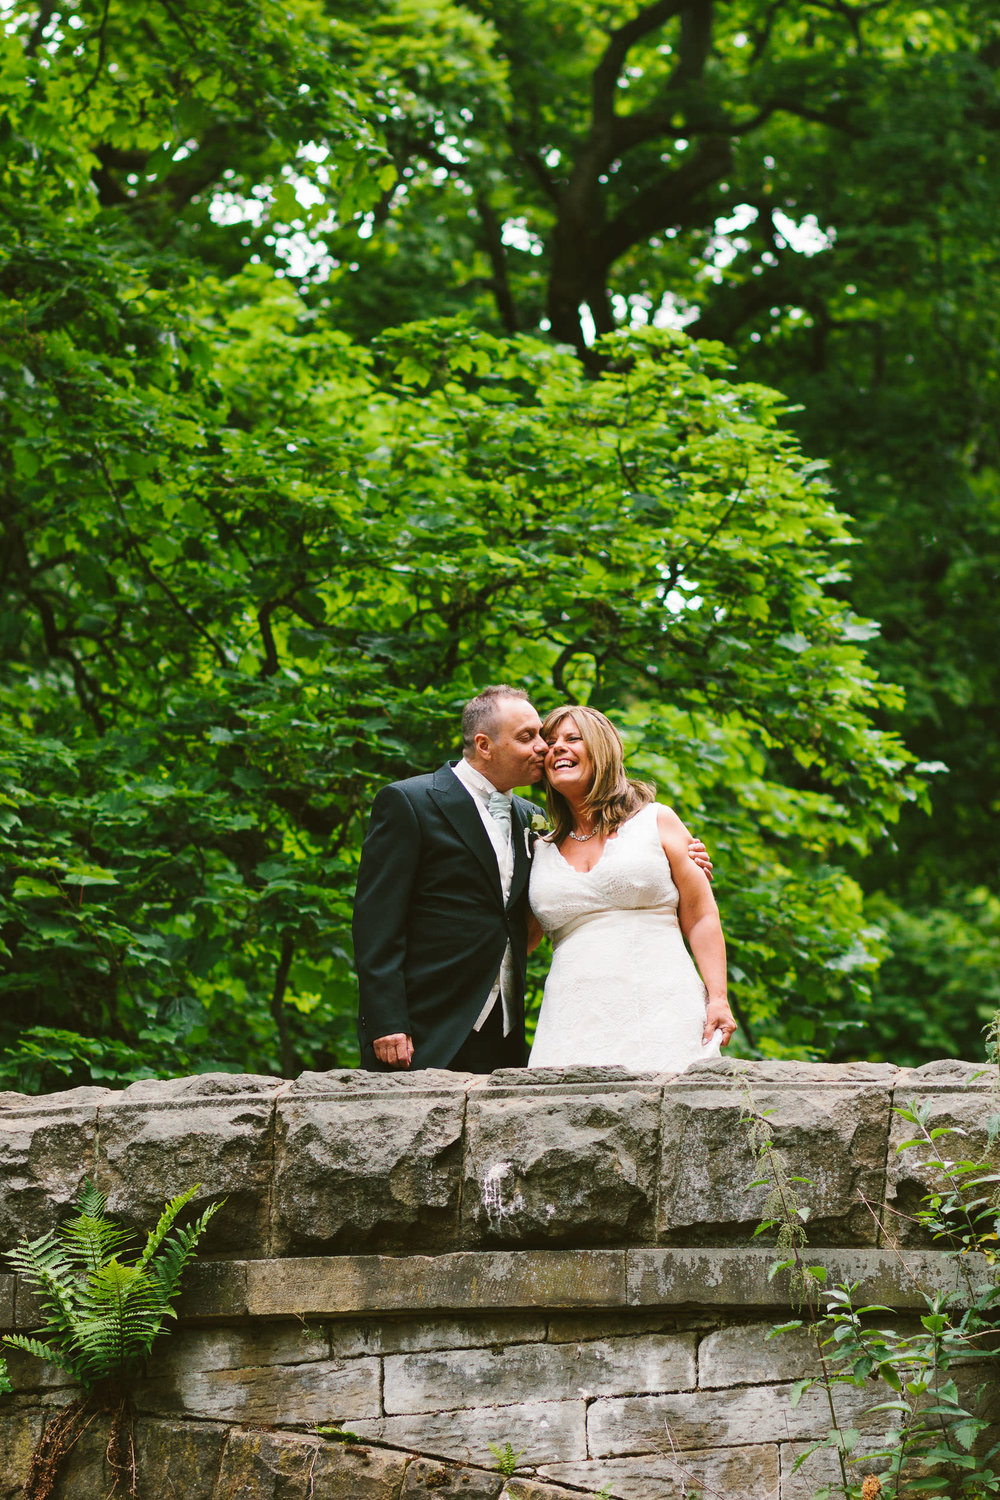 Bride and groom kiss and laugh while standing behind stone wall with trees behind